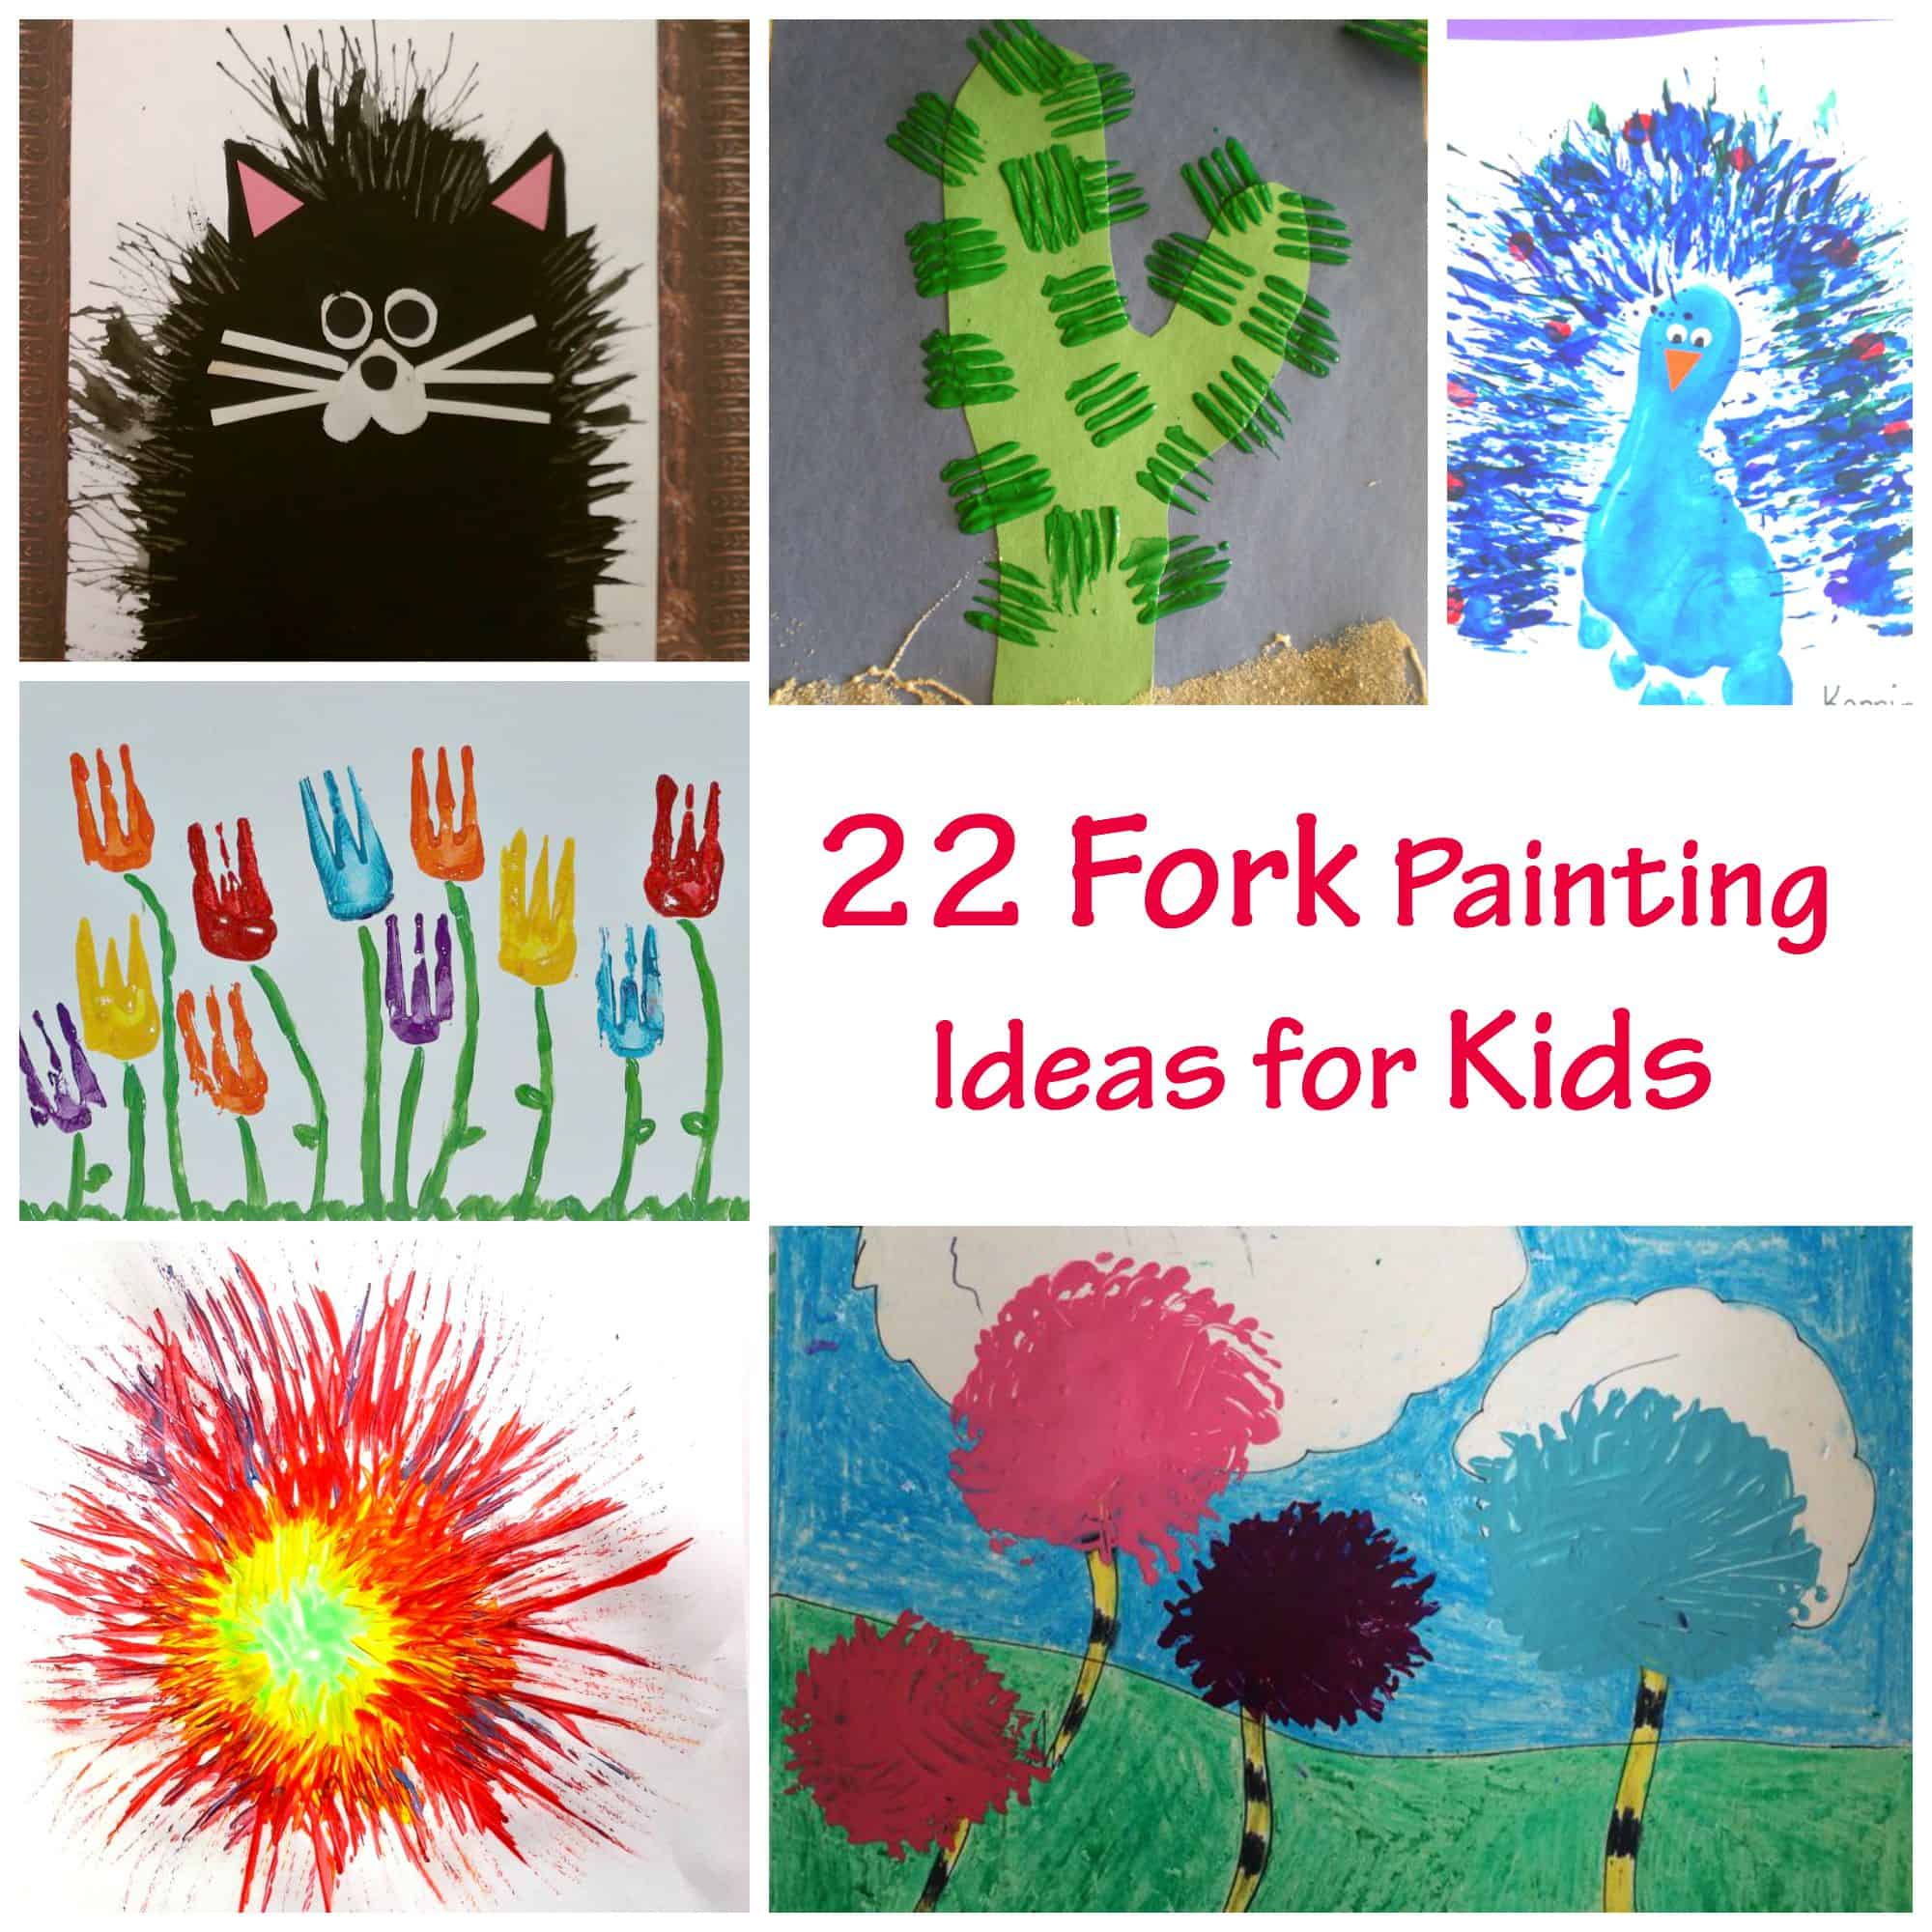 22 fork painting ideas for kids emma owl for Canvas art ideas for kids